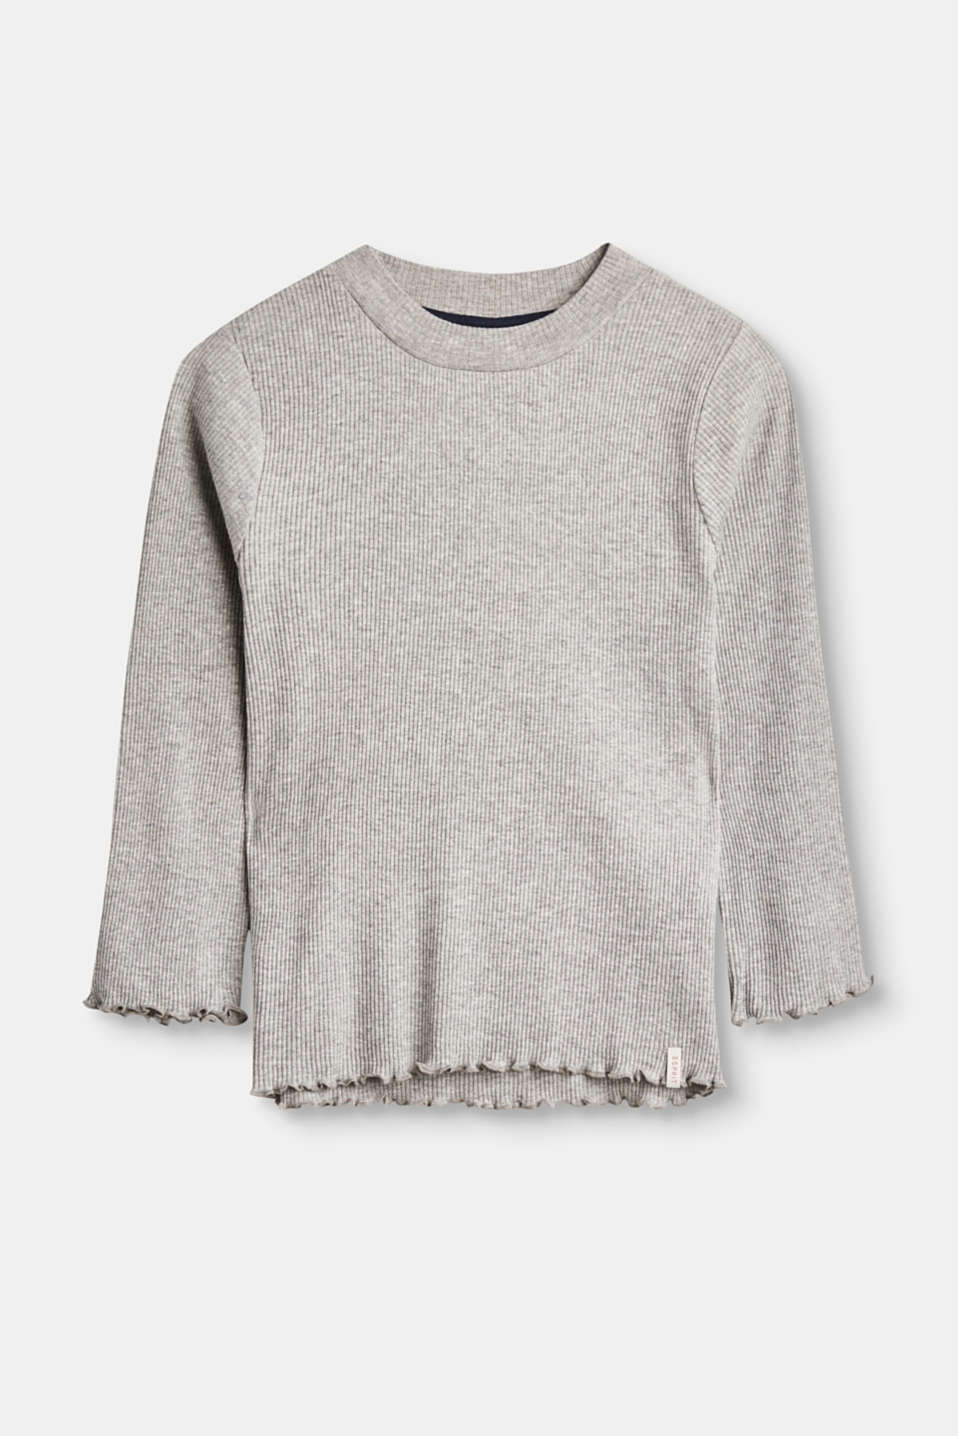 Esprit - Long sleeve top in soft, ribbed jersey